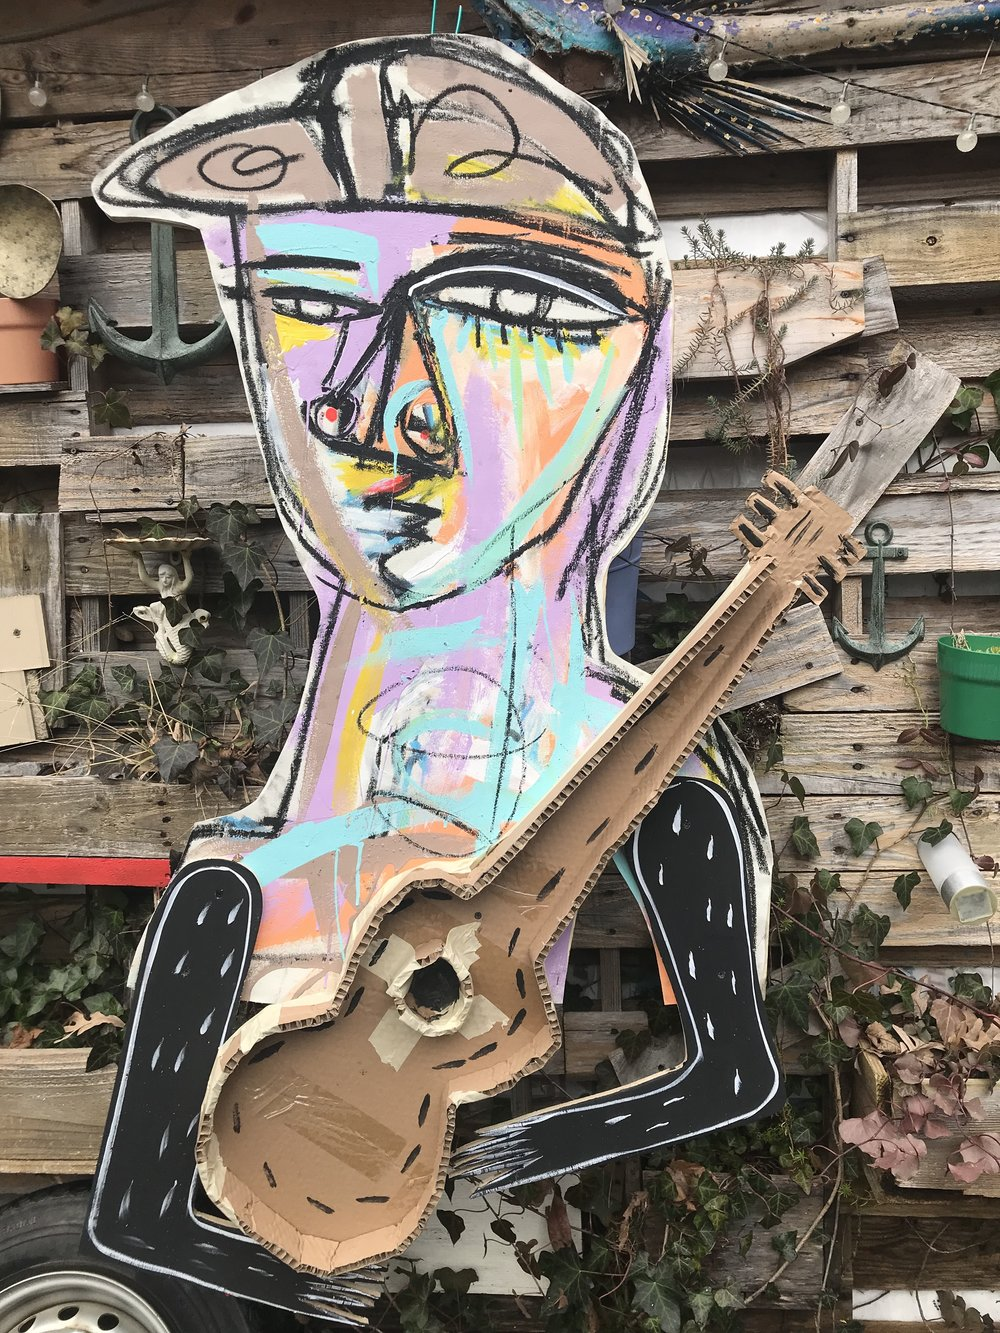 STREET ARTIST 2, CANVAS OVER WOOD CUTOUT WITH CARDBOARD